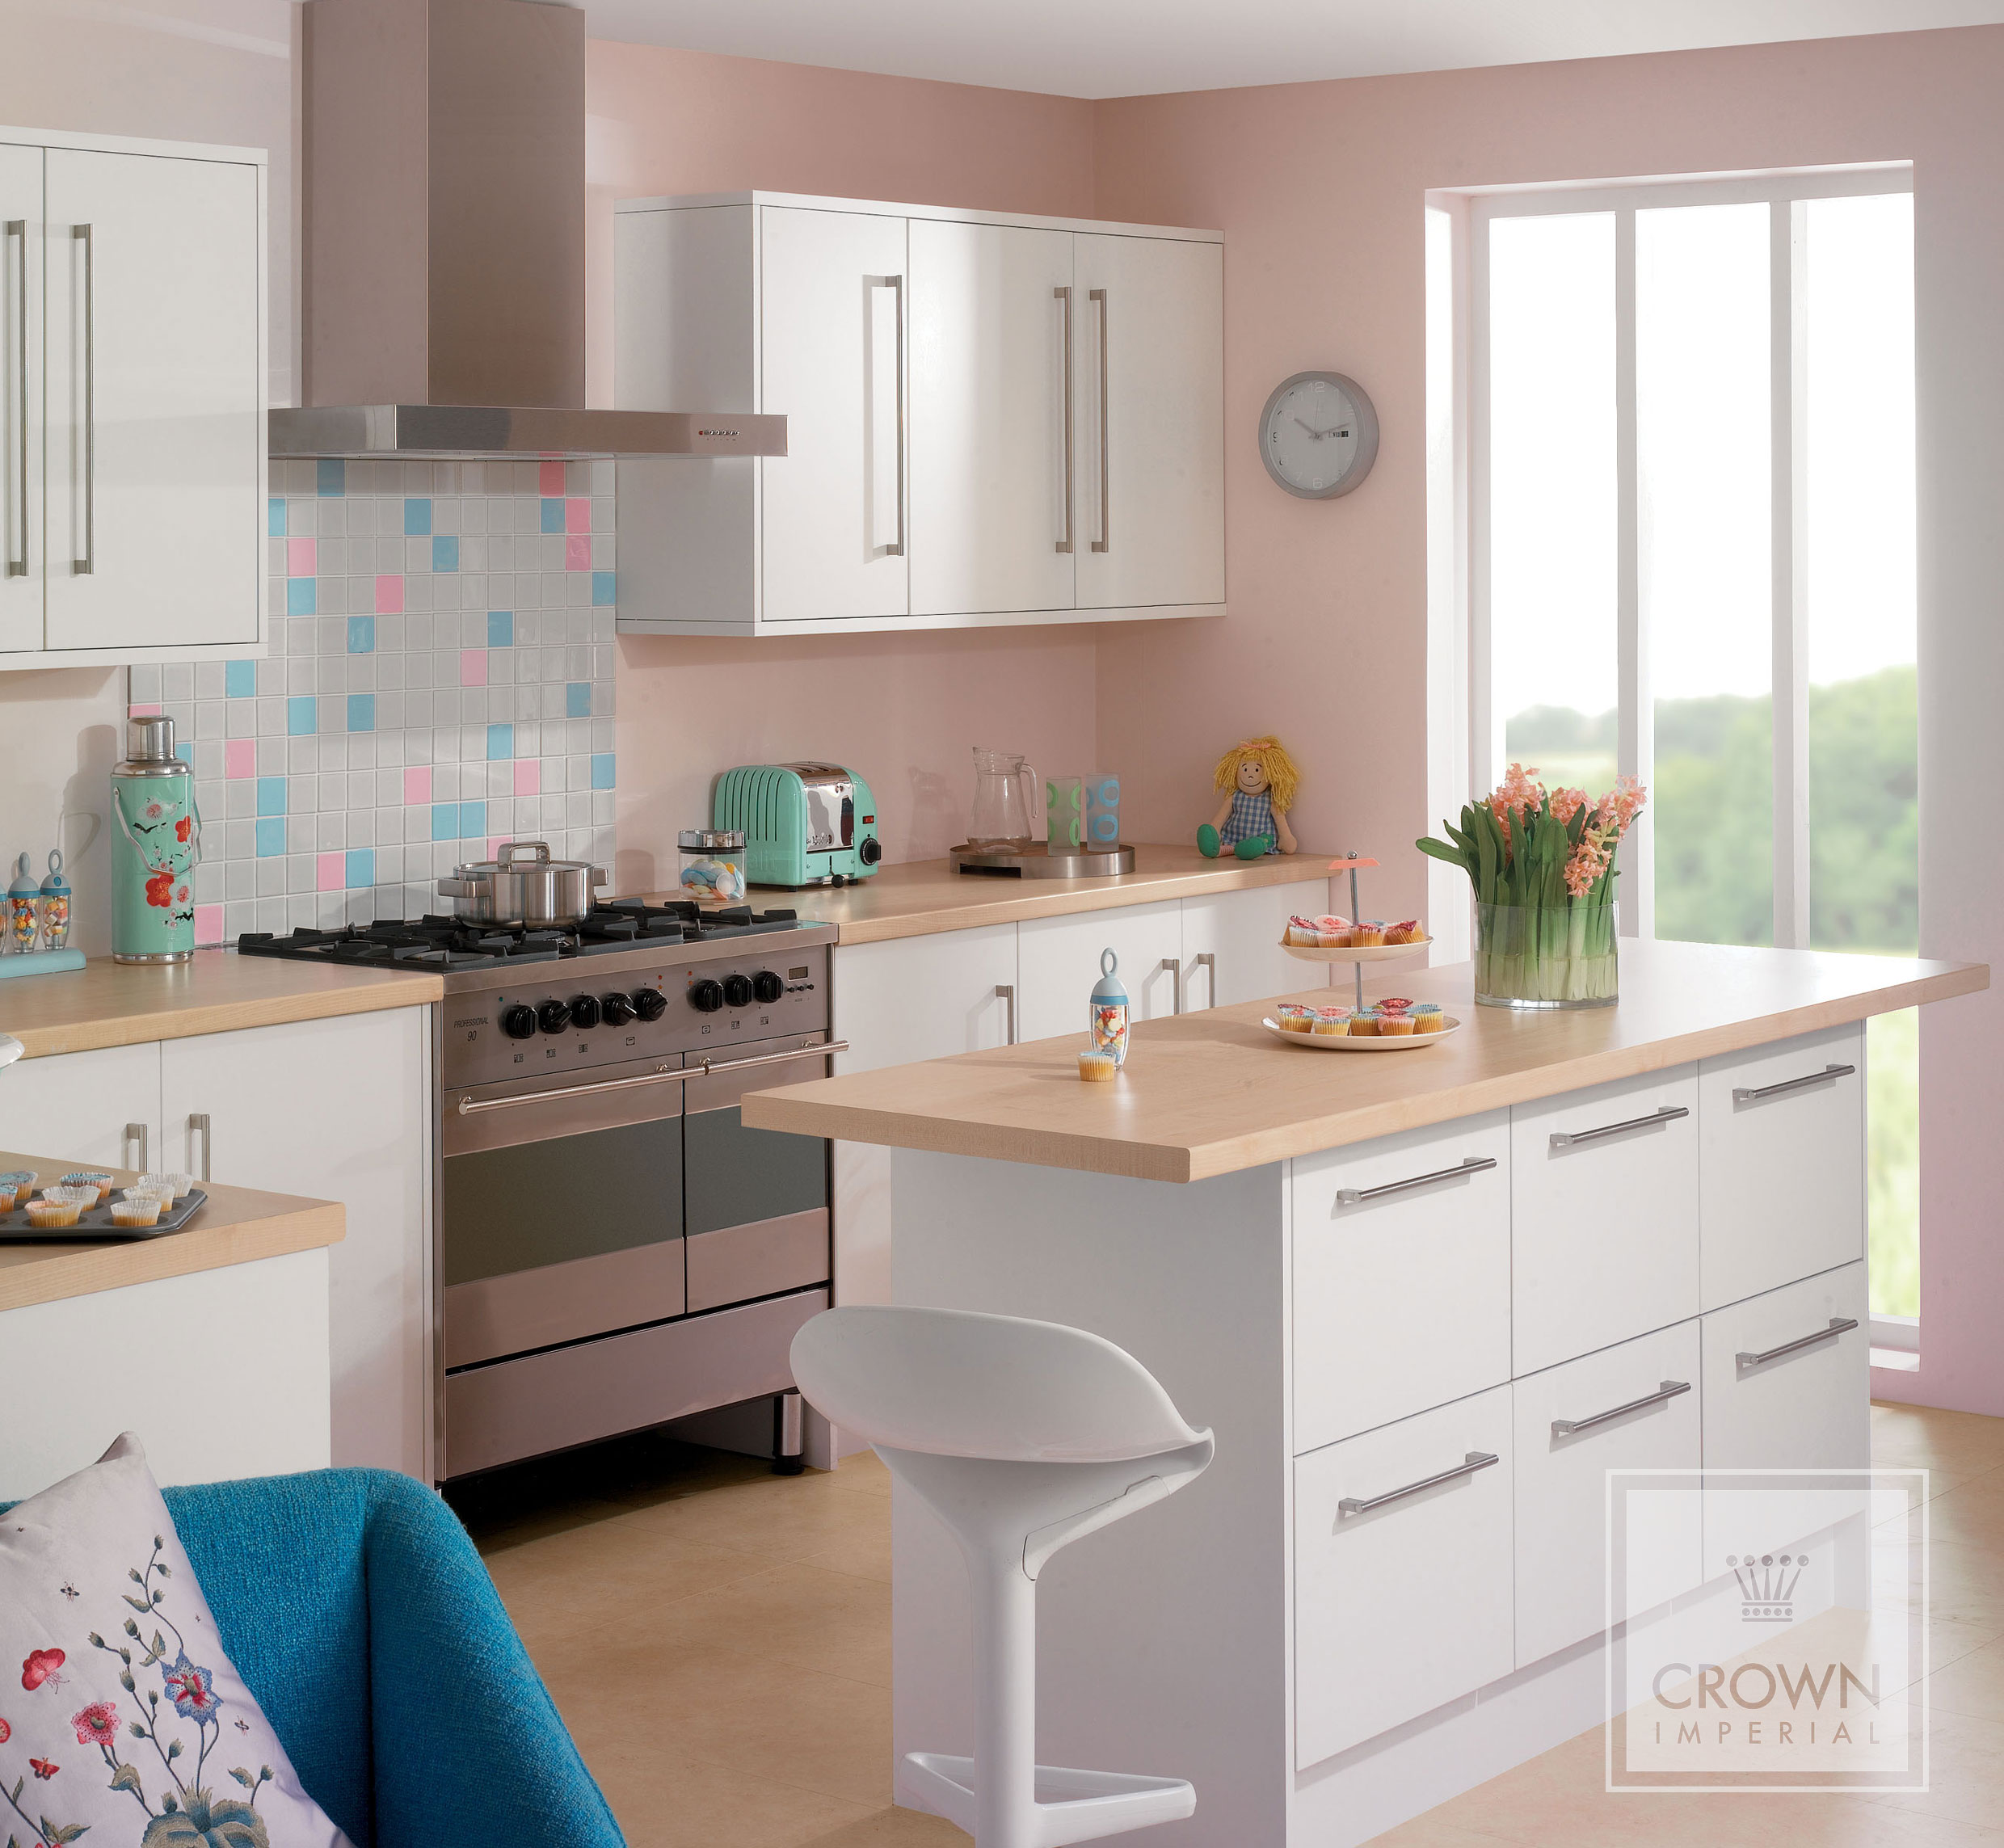 Lifestyle Designs The Skipton Kitchen Company Design Installation Of Quality Rigid